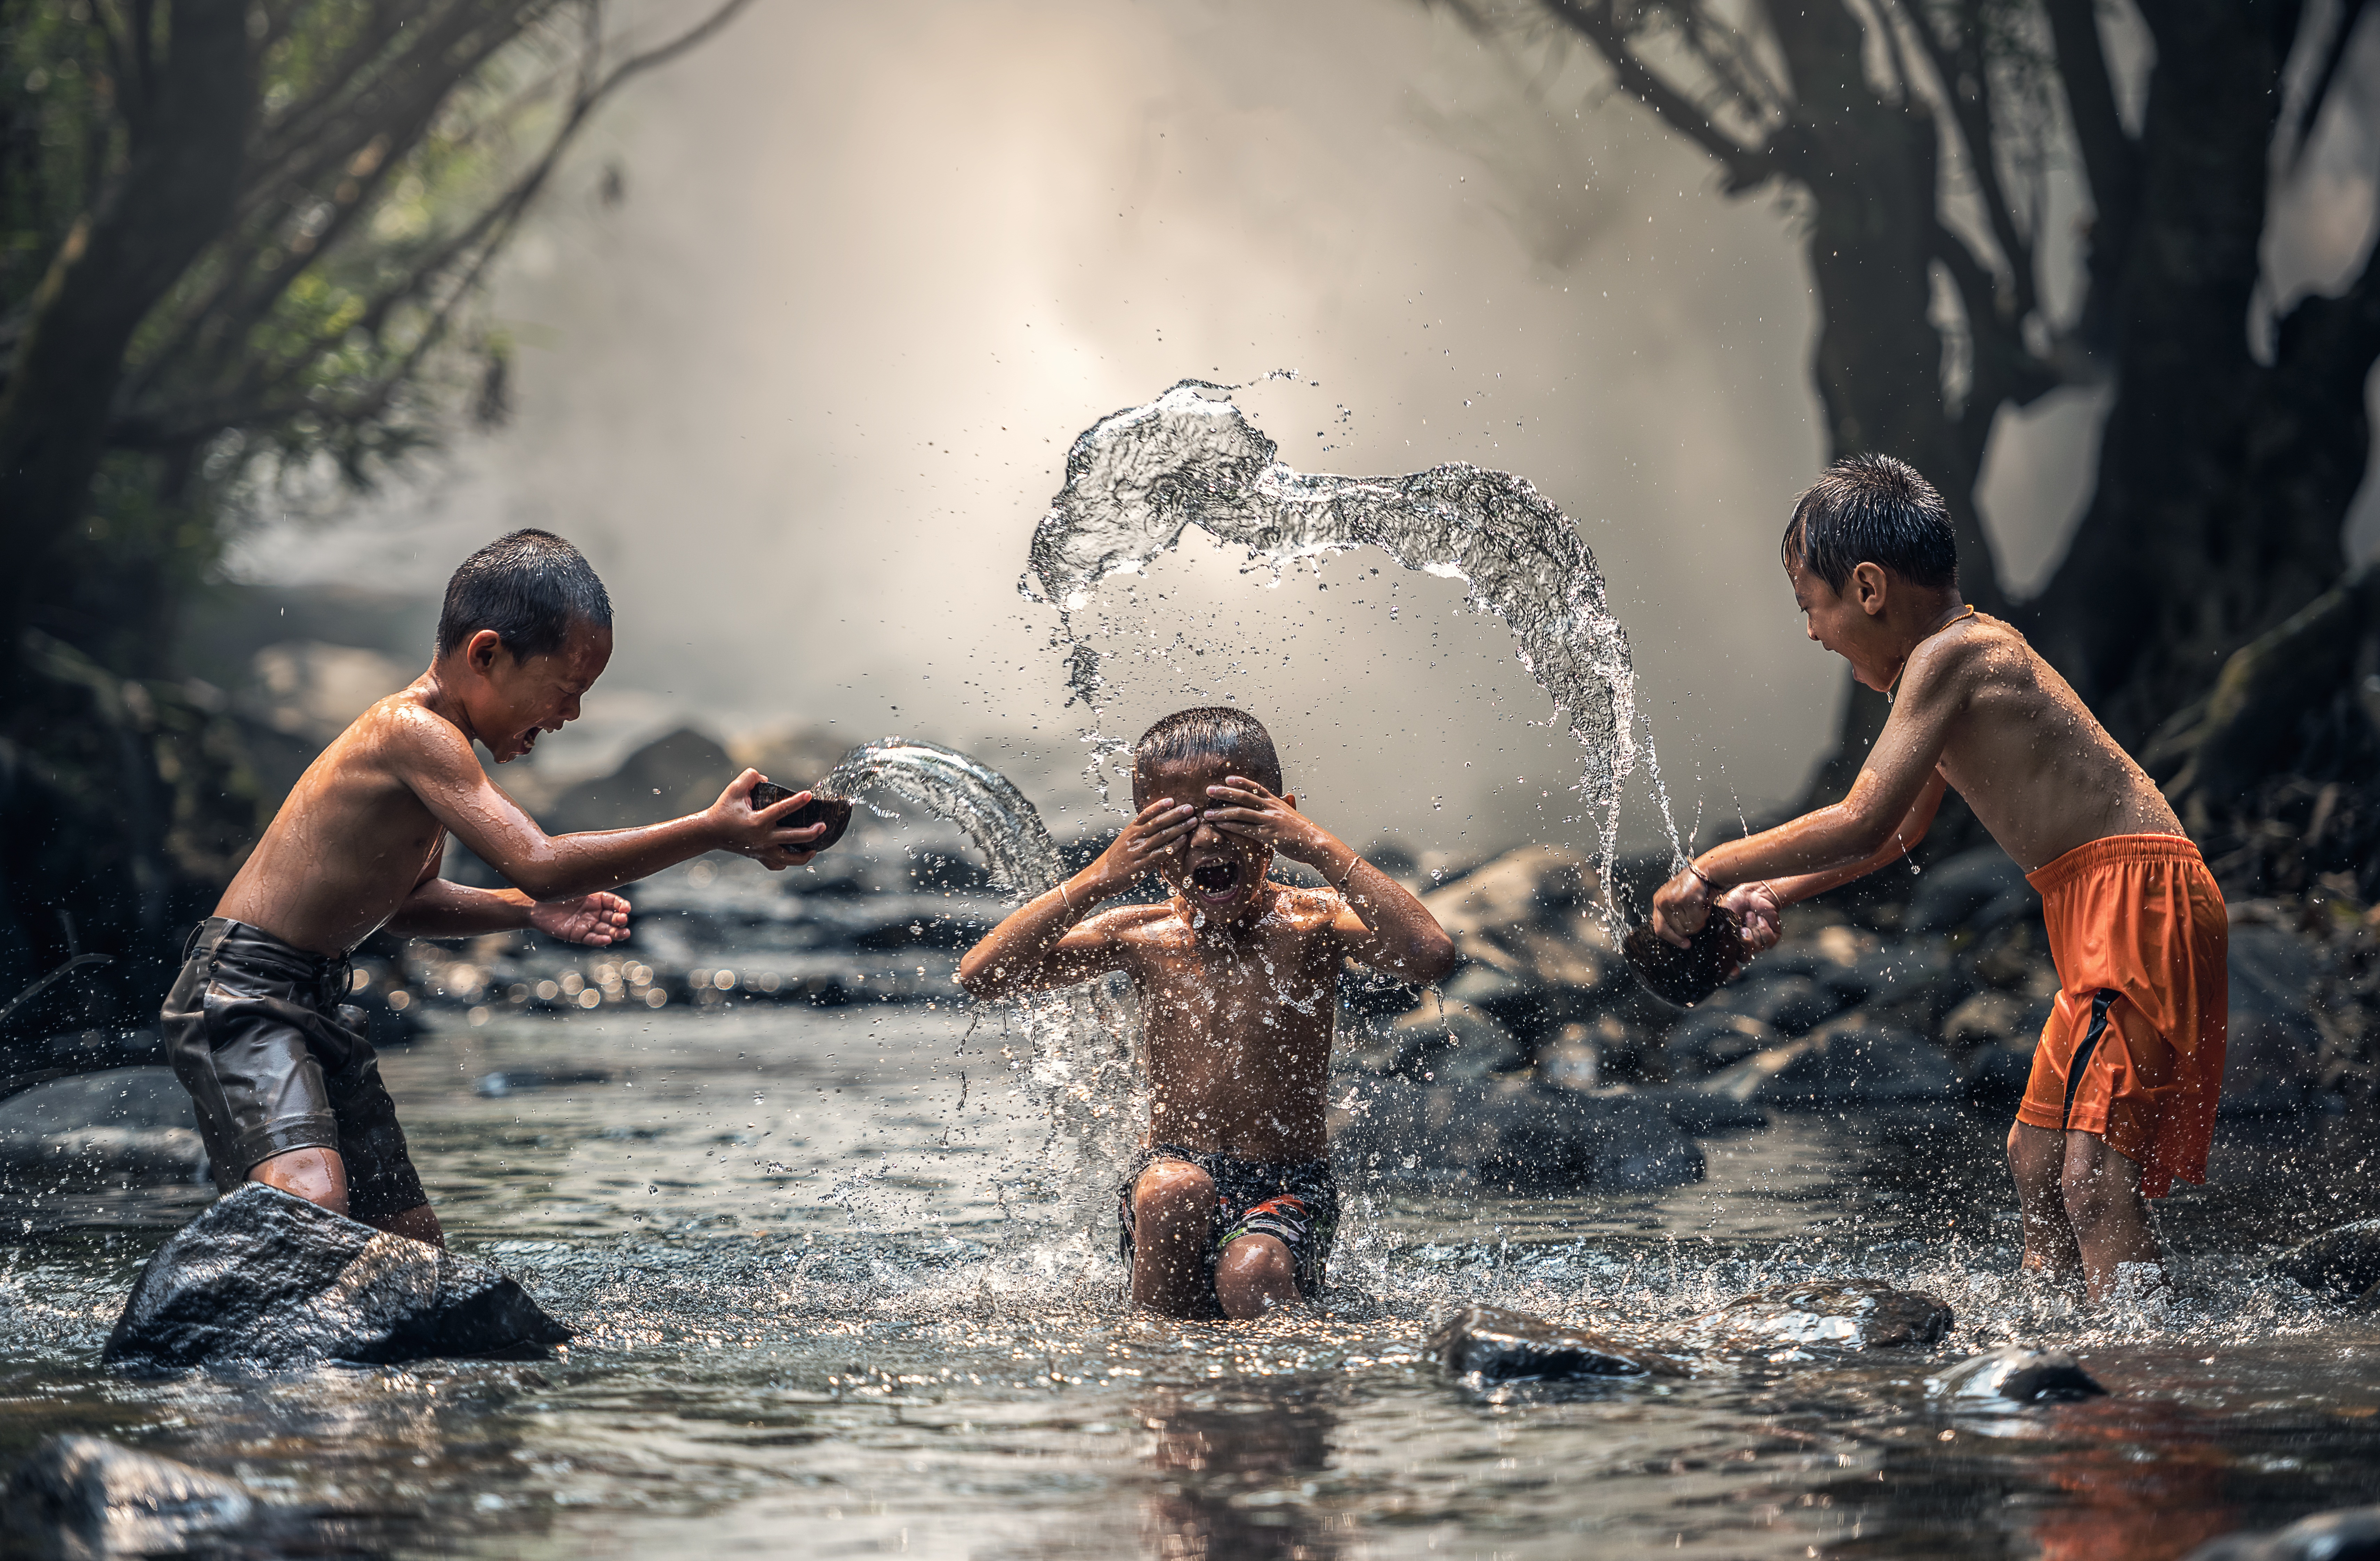 Image: Children playing in a pond